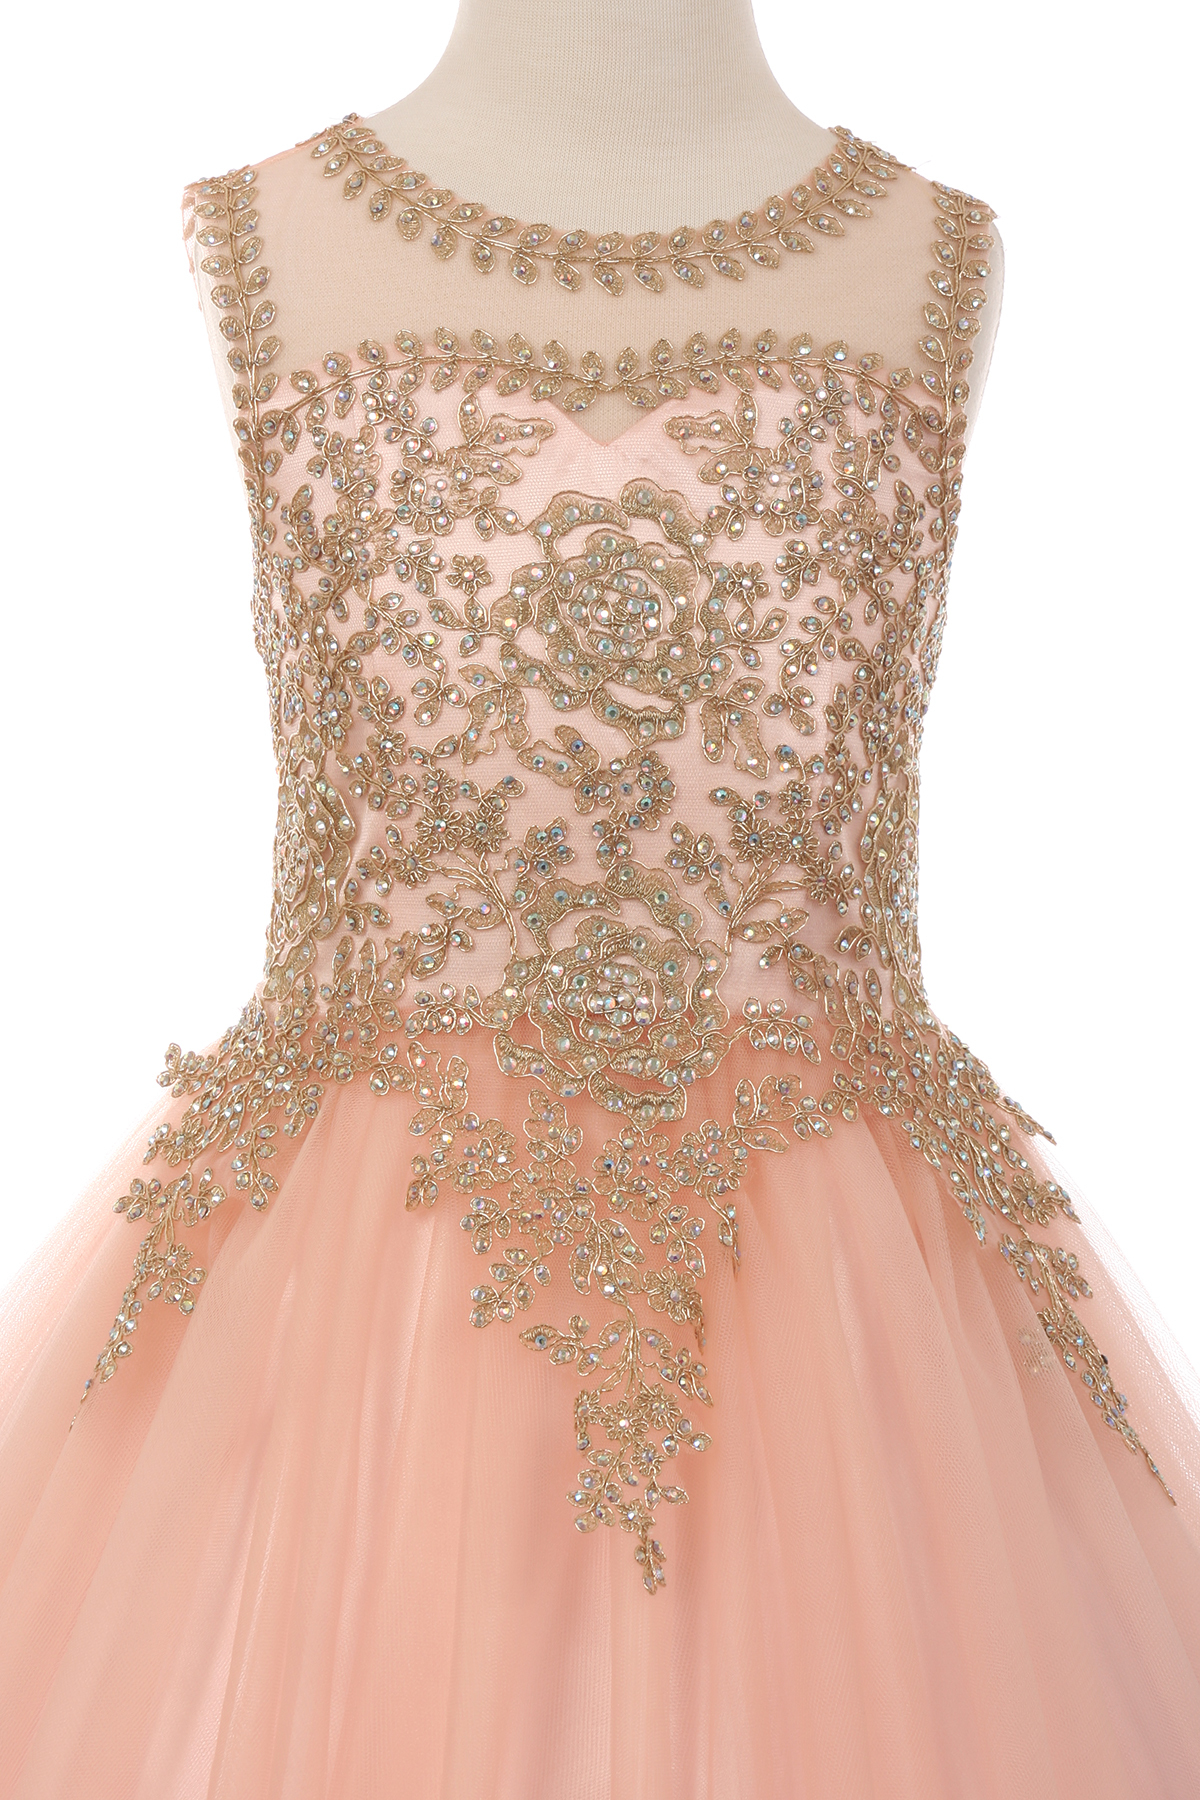 Sparkling illusion rhinestone party tulle dress